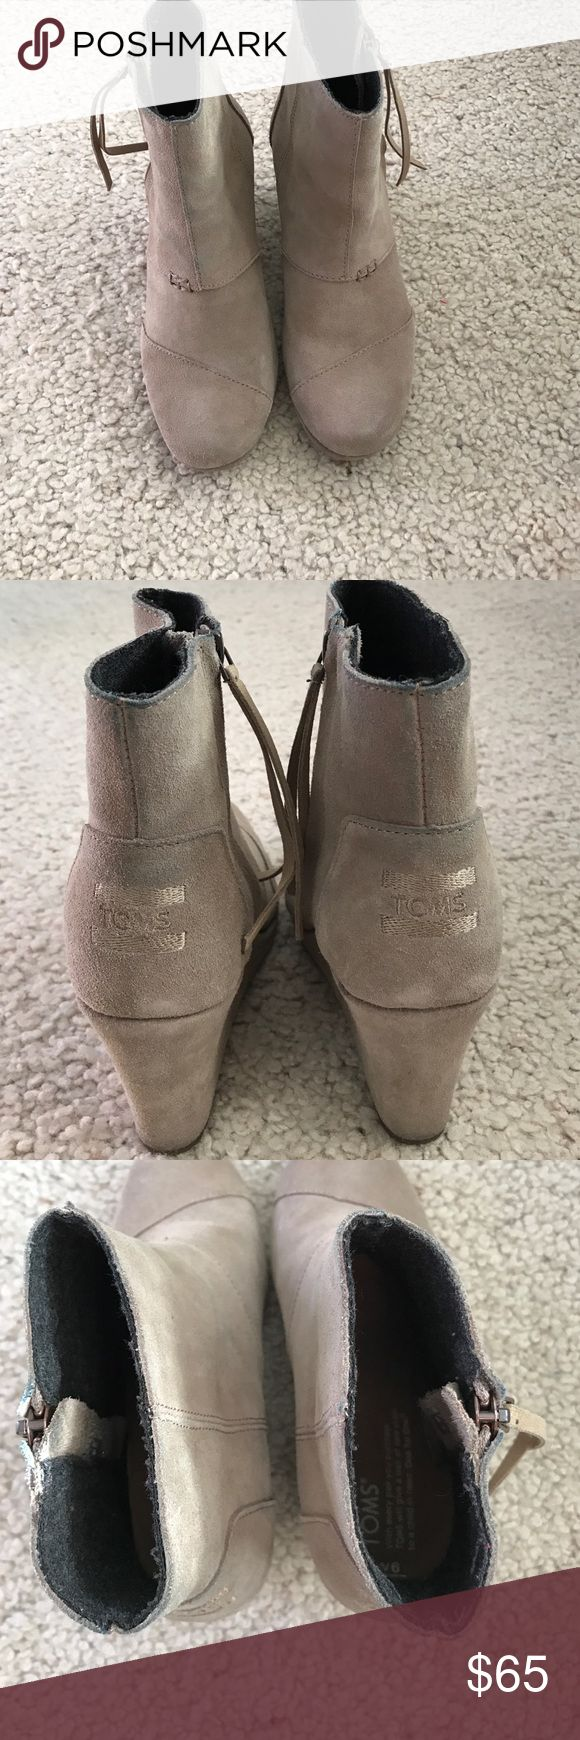 TOMS Desert Wedge High Booties TOMS Desert Wedge High Booties. Color Taupe Suede. Size 6. Only worn a few times. Good Condition. A little bit of blue rubbed off onto them from jeans along the top as shown in the picture. TOMS Shoes Ankle Boots & Booties